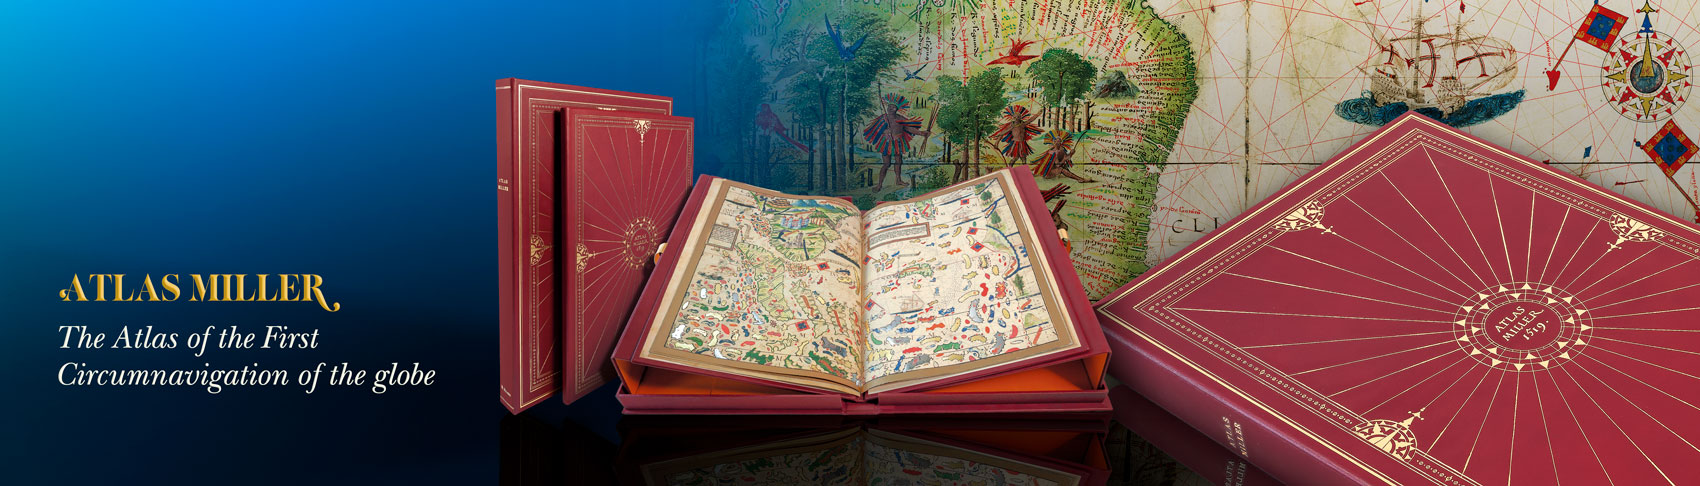 The Atlas of the First Circumnavigation of the globe